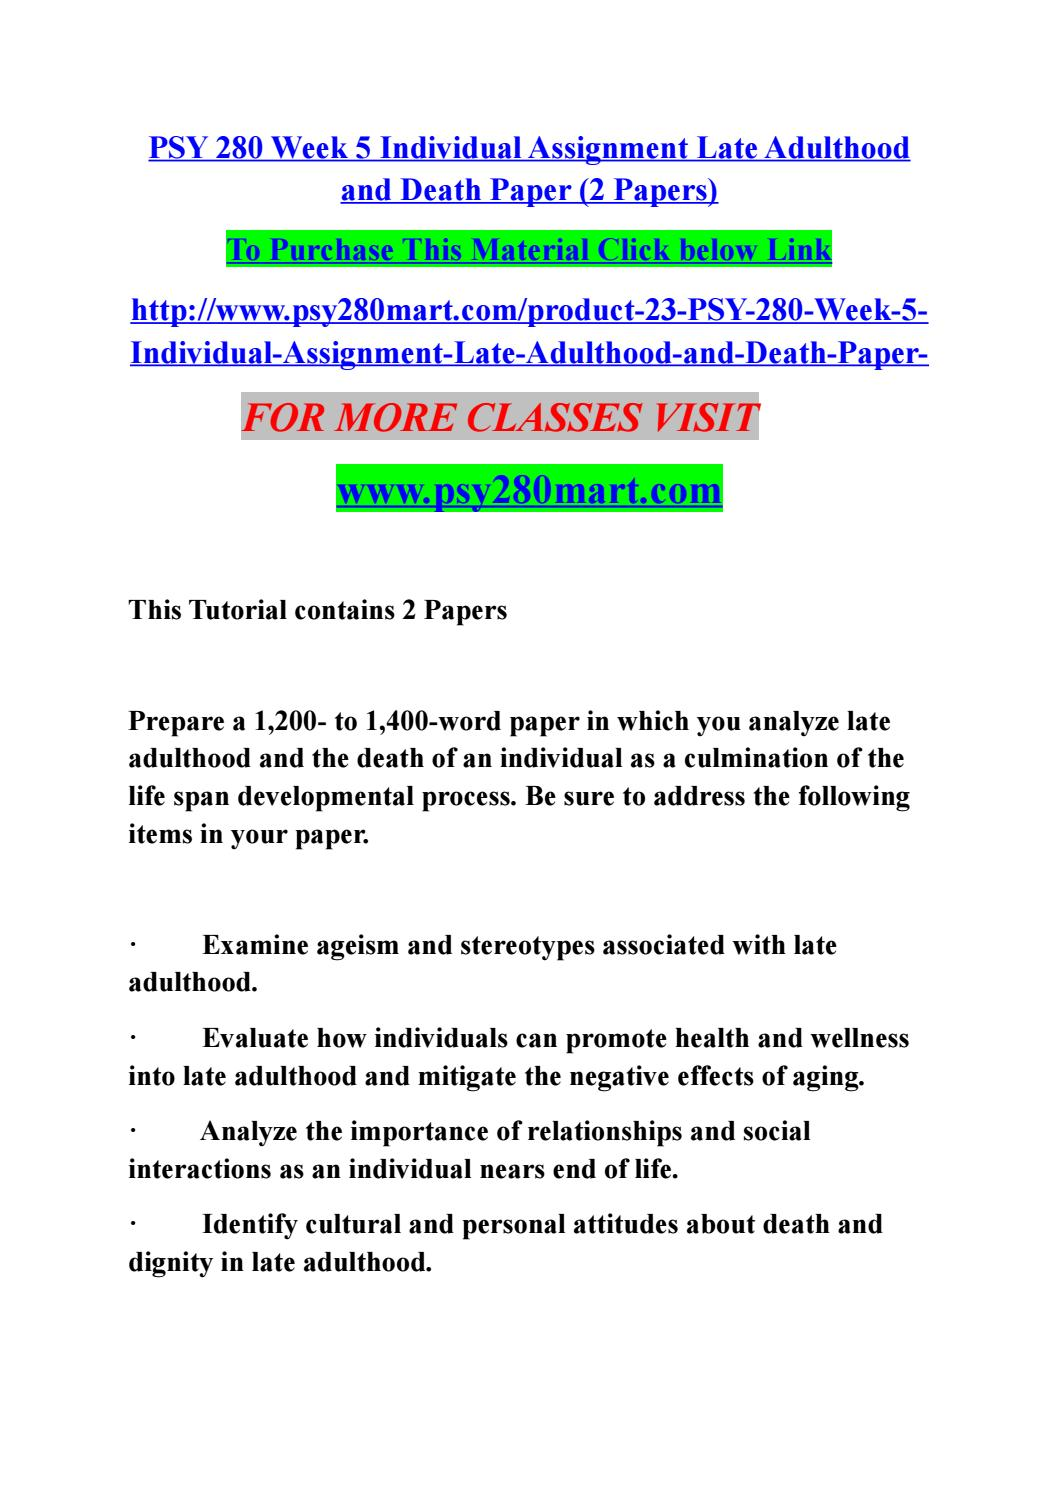 essay about late adulthood Read this essay on late adulthood and death paper come browse our large digital warehouse of free sample essays get the knowledge you need in order to pass your classes and more only at termpaperwarehousecom.